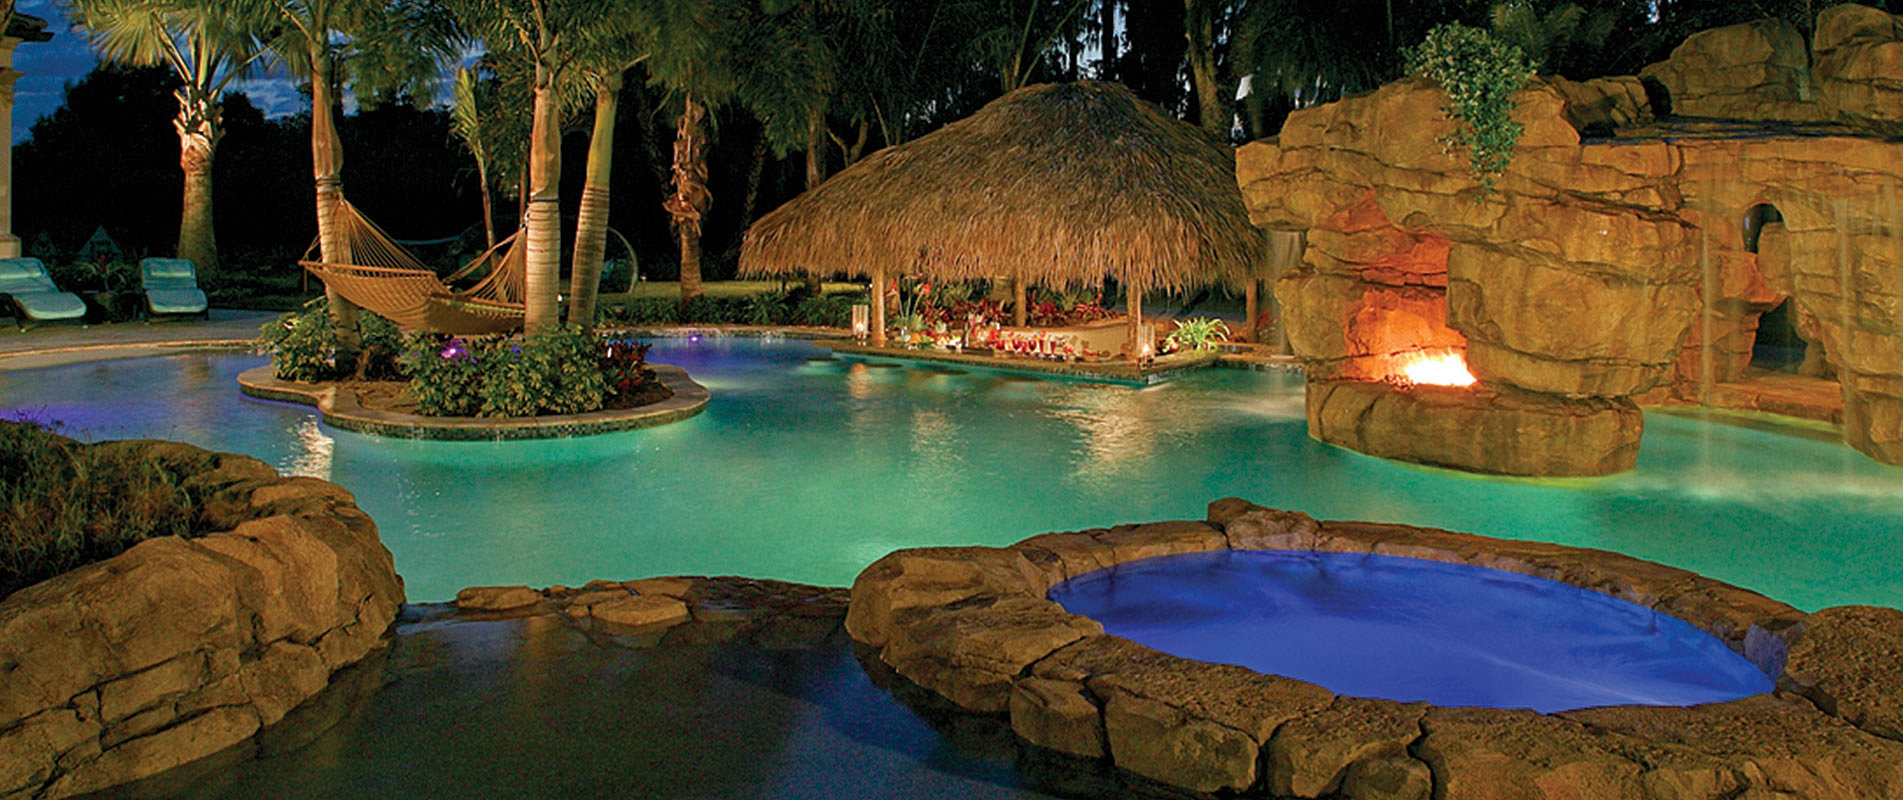 Custom luxury pools in central florida by southern pool for Design my pool